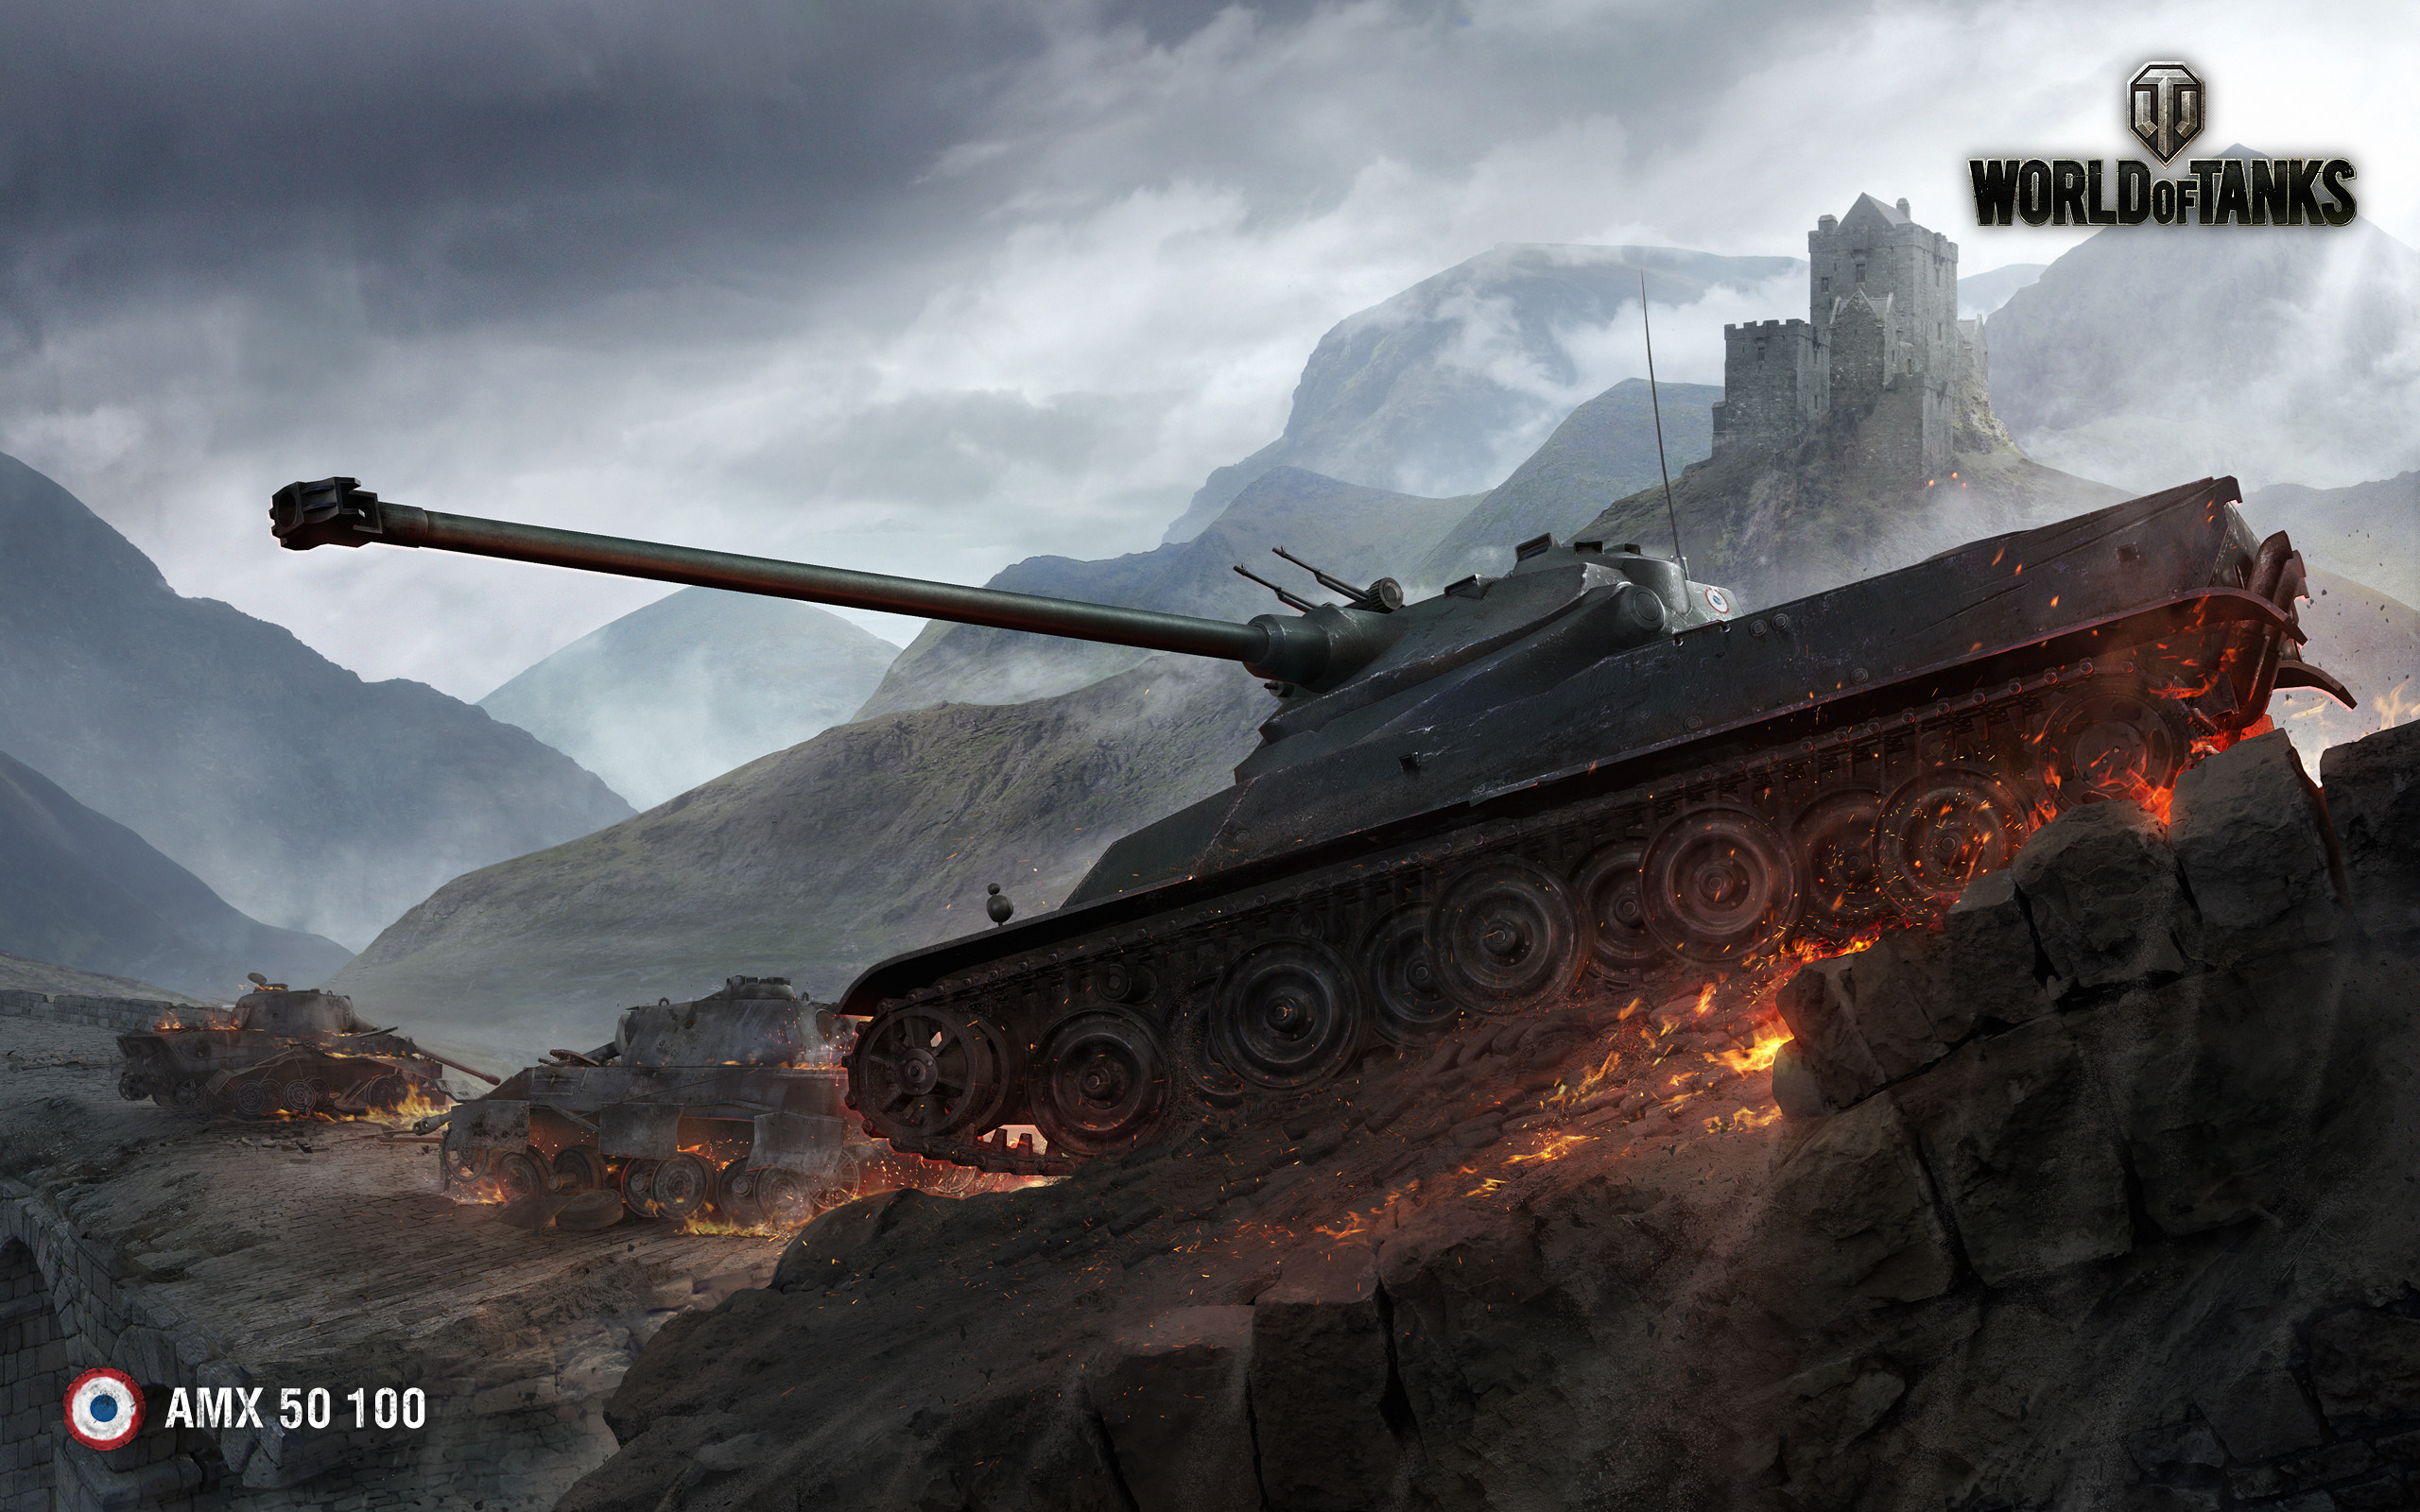 HD Wallpapers AMX 50 100 World of Tanks